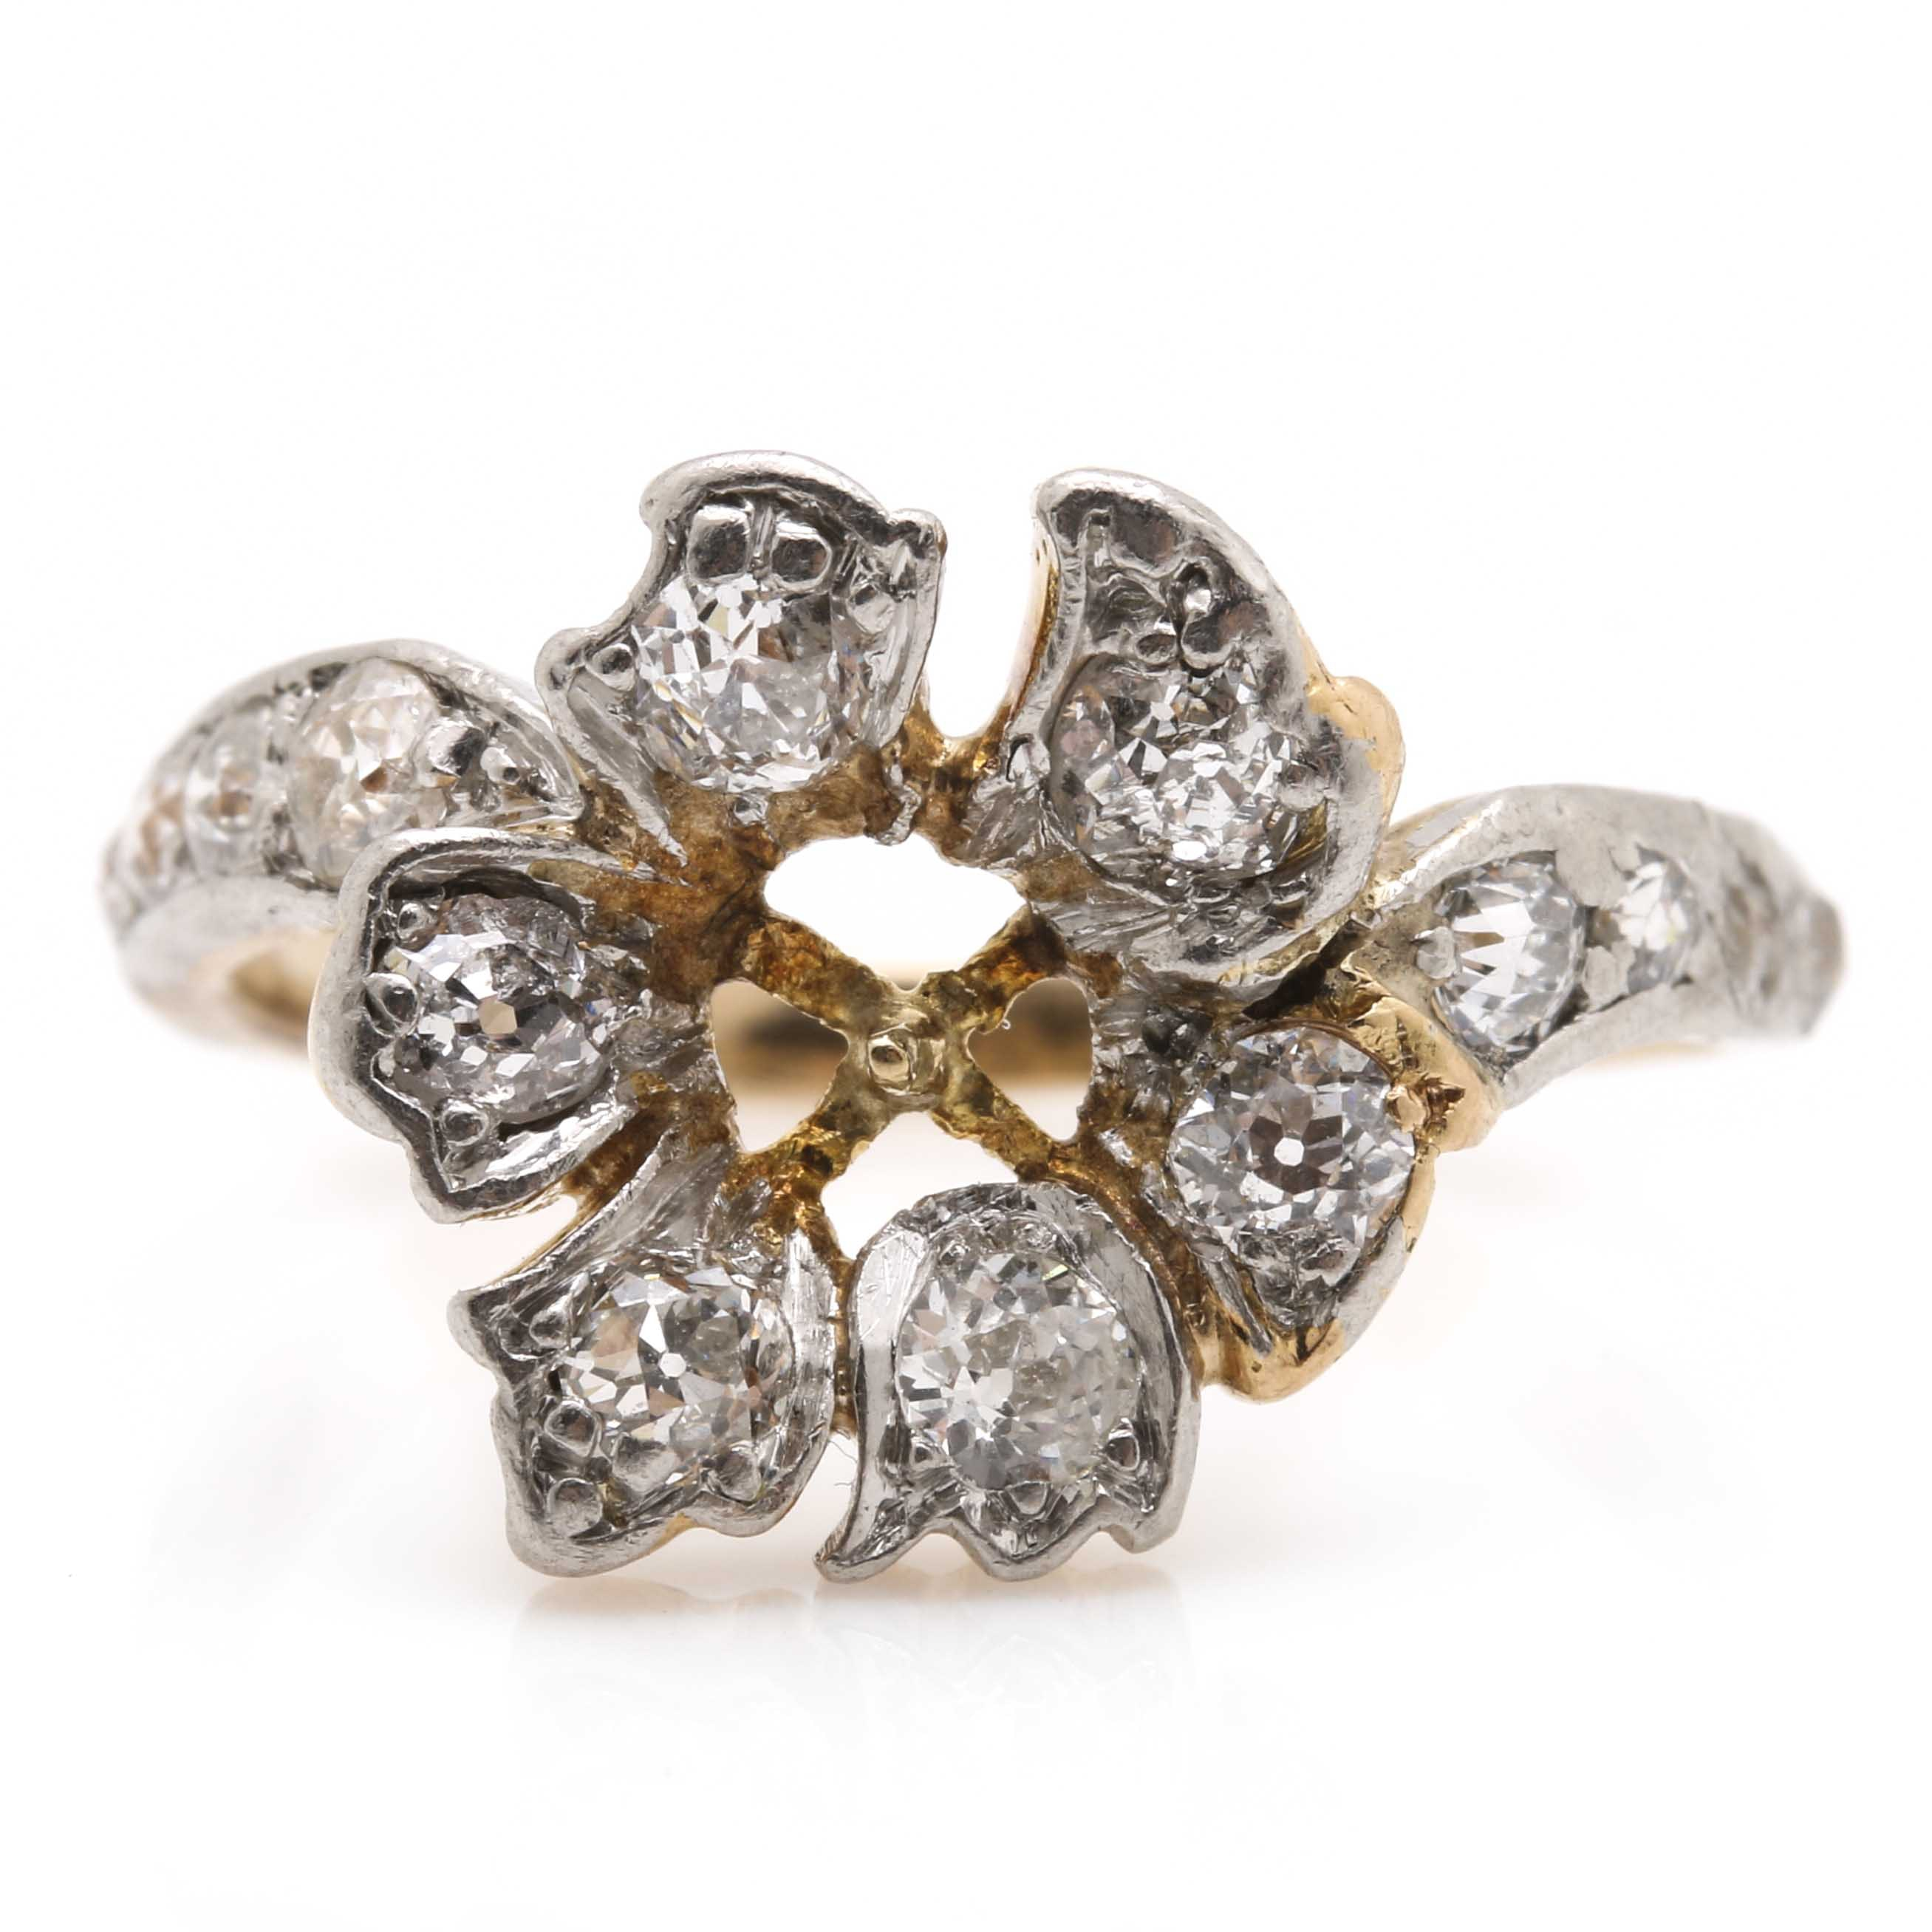 18K Yellow Gold and Platinum Diamond Giardinetti Ring